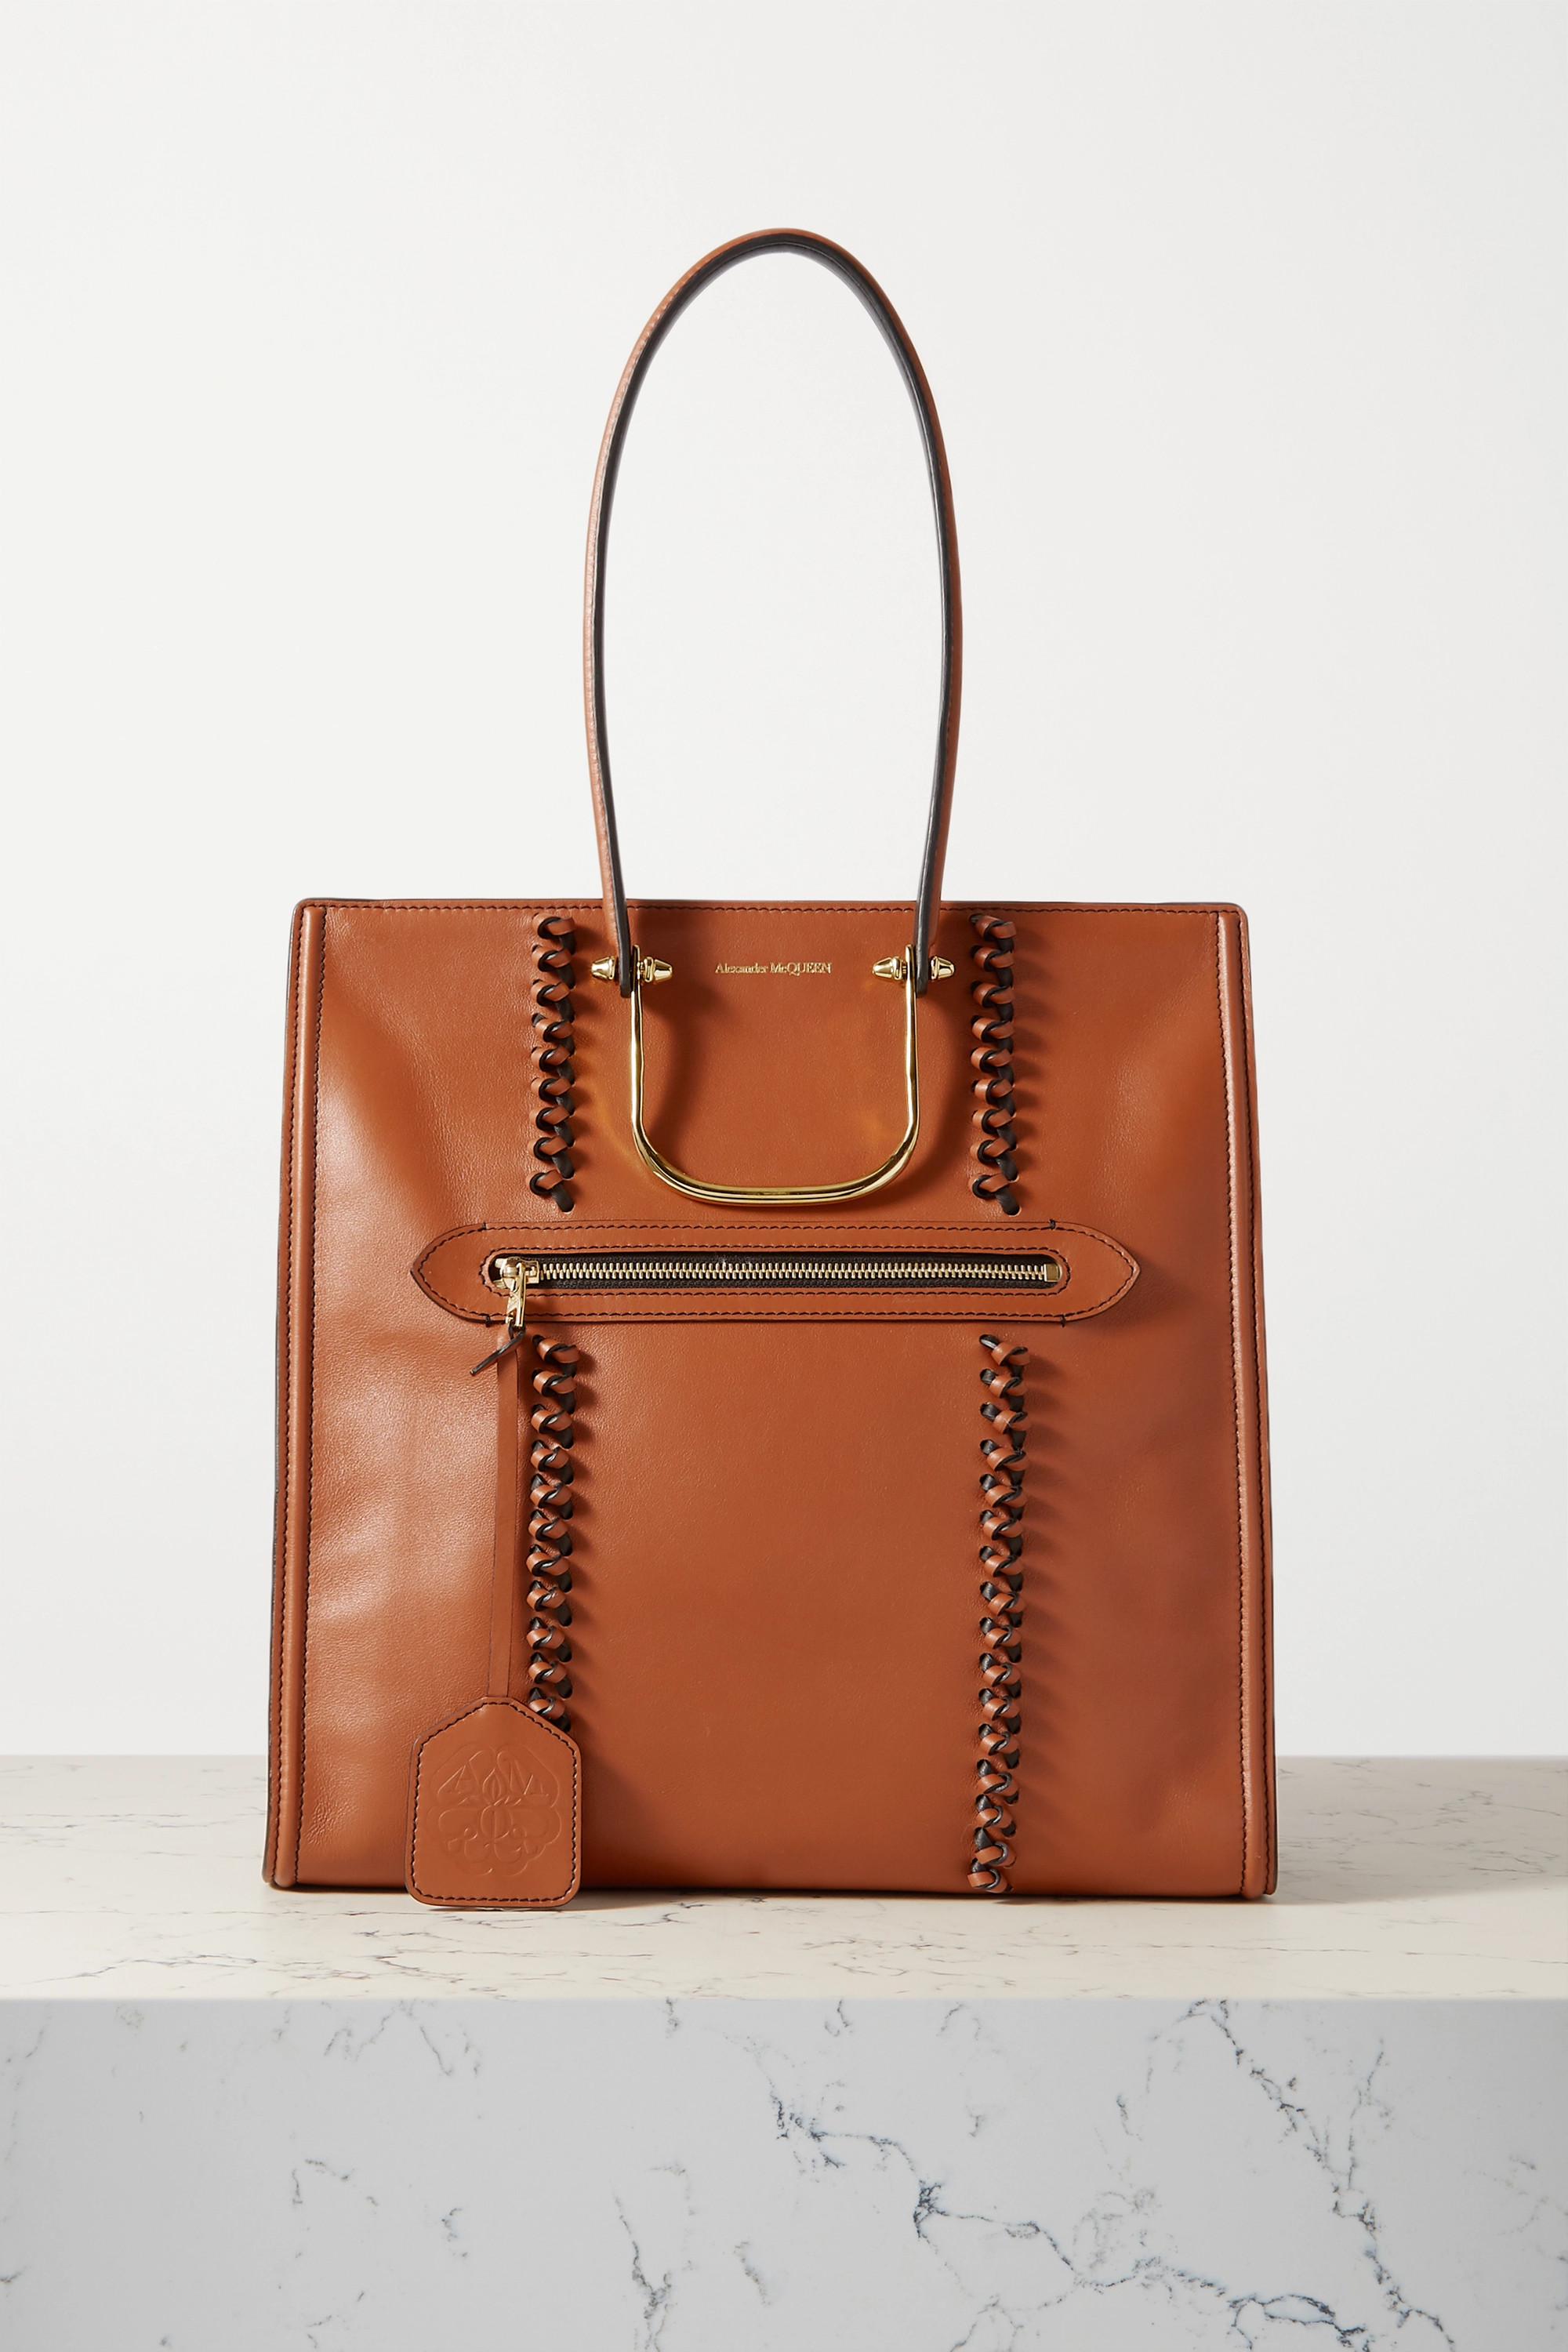 Alexander McQueen - The Tall Story braided leather tote